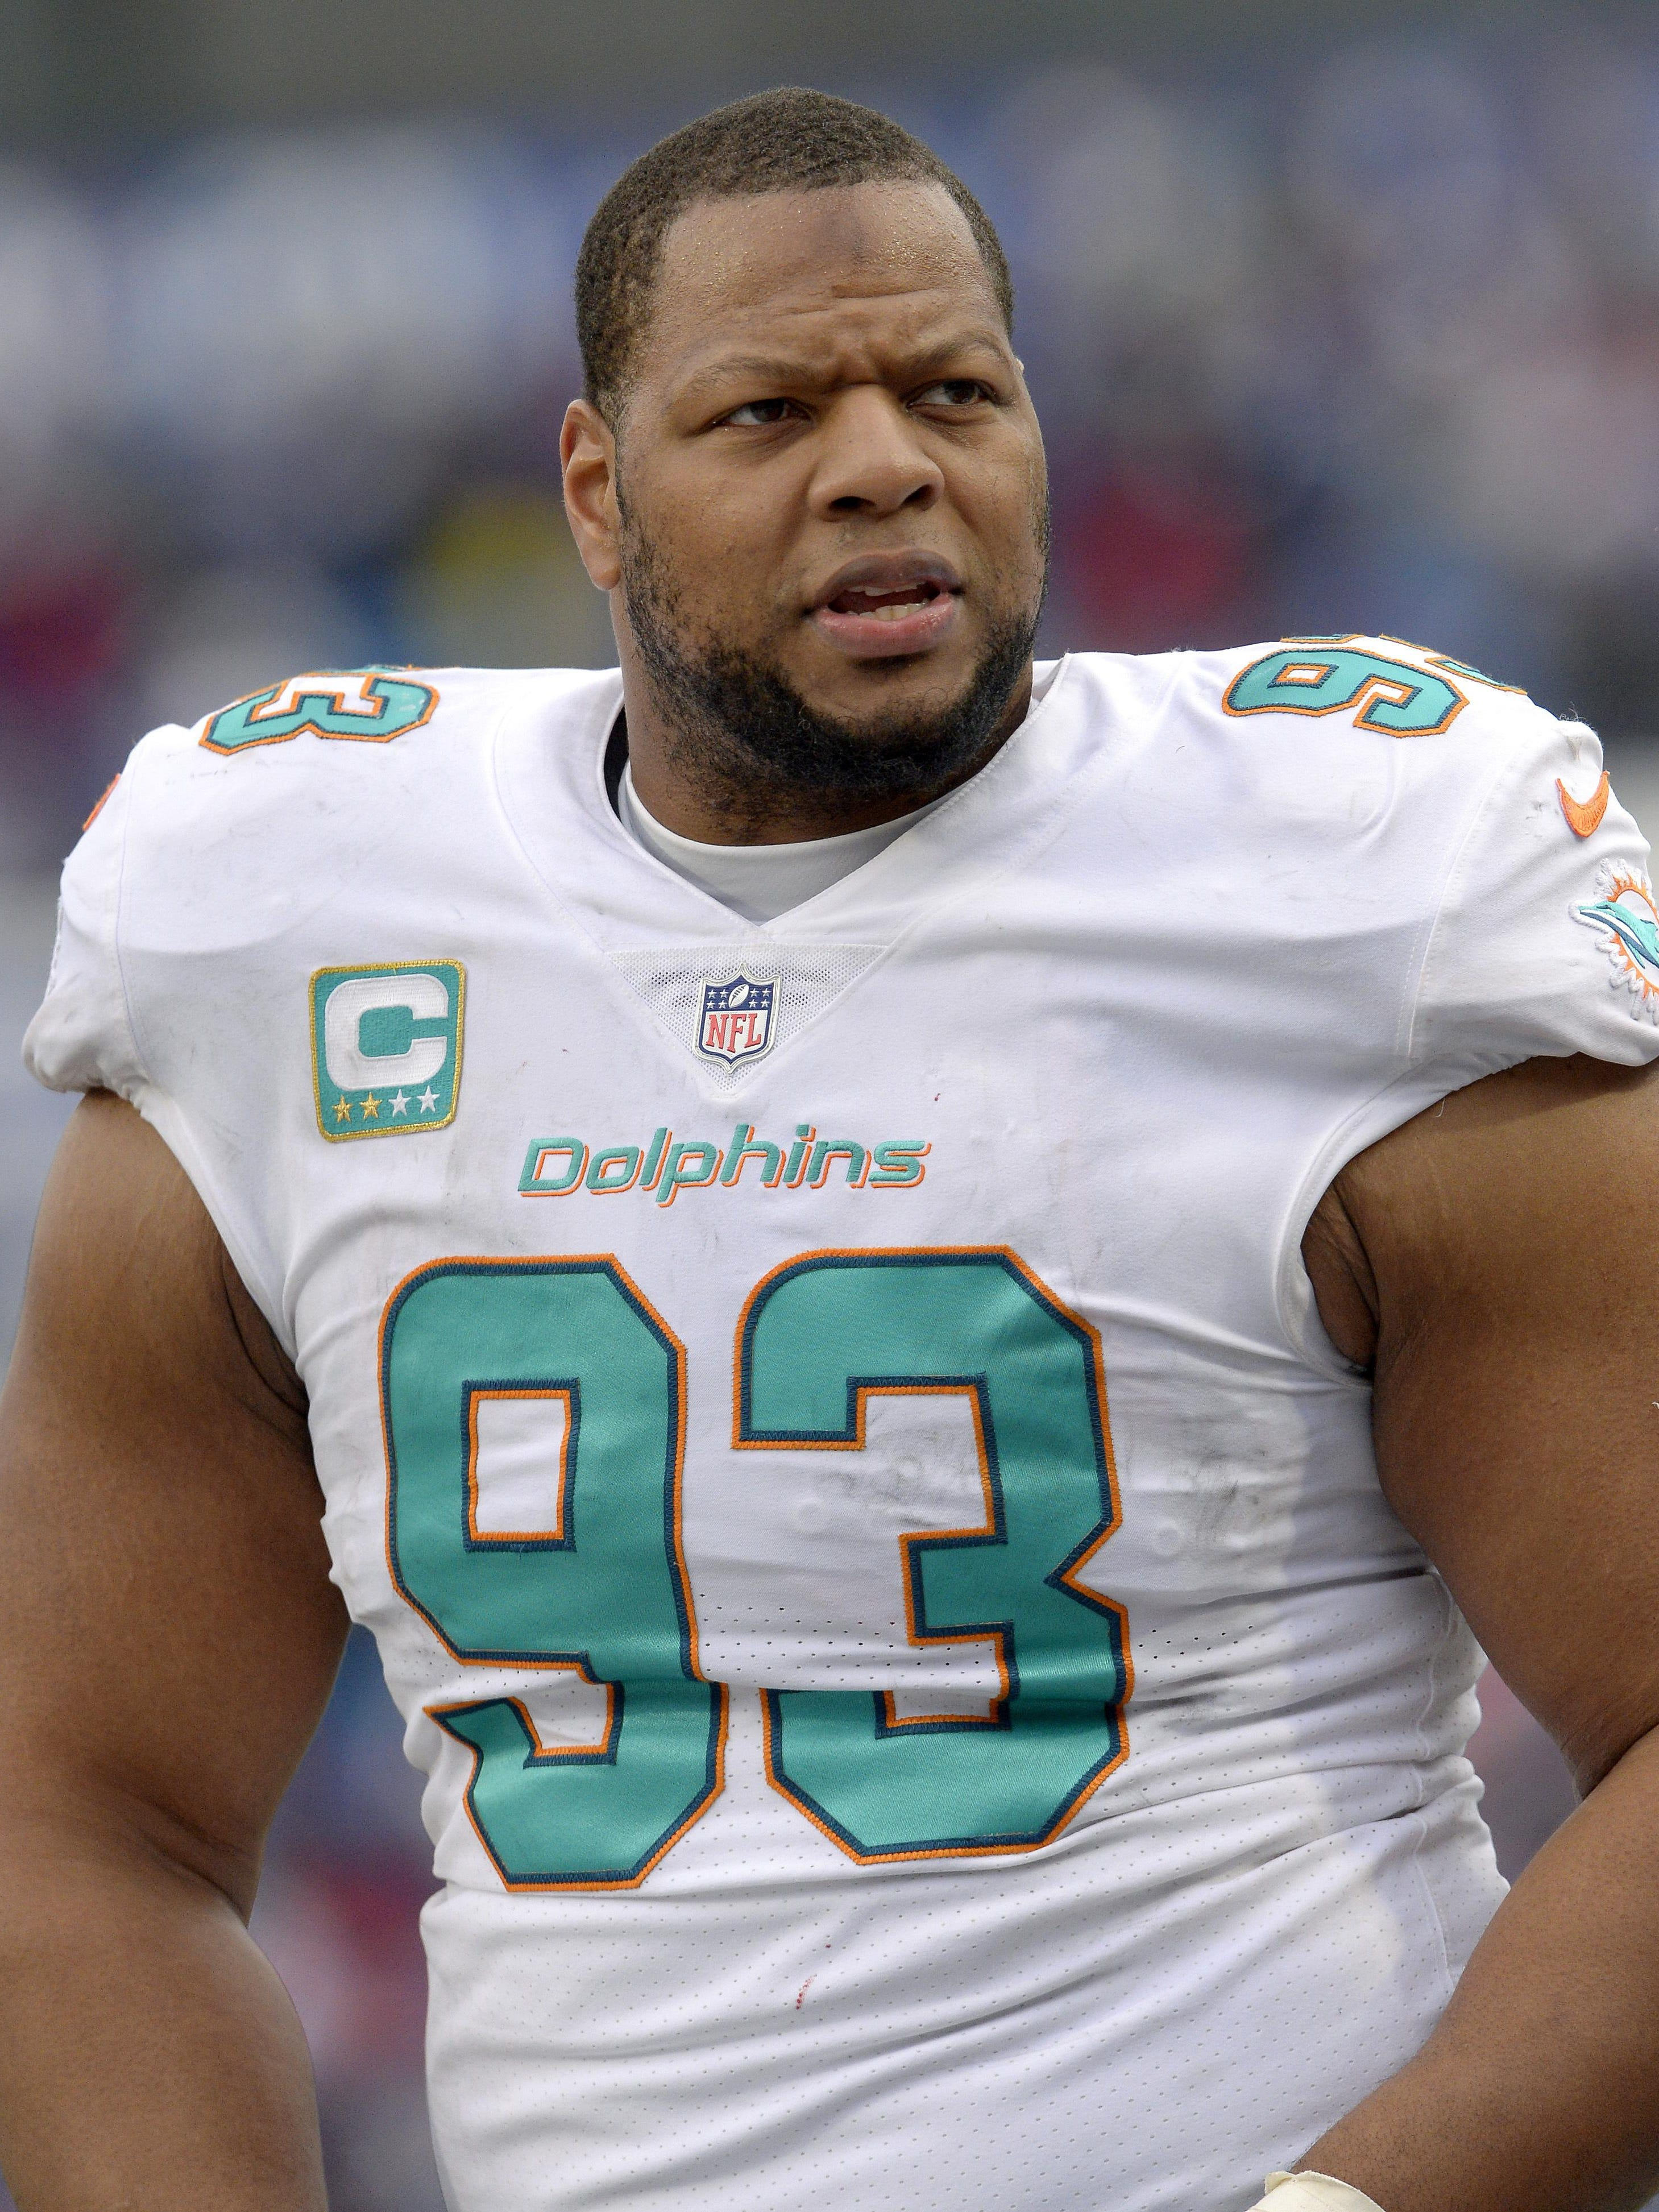 Miami Dolphins release ex Lion Ndamukong Suh